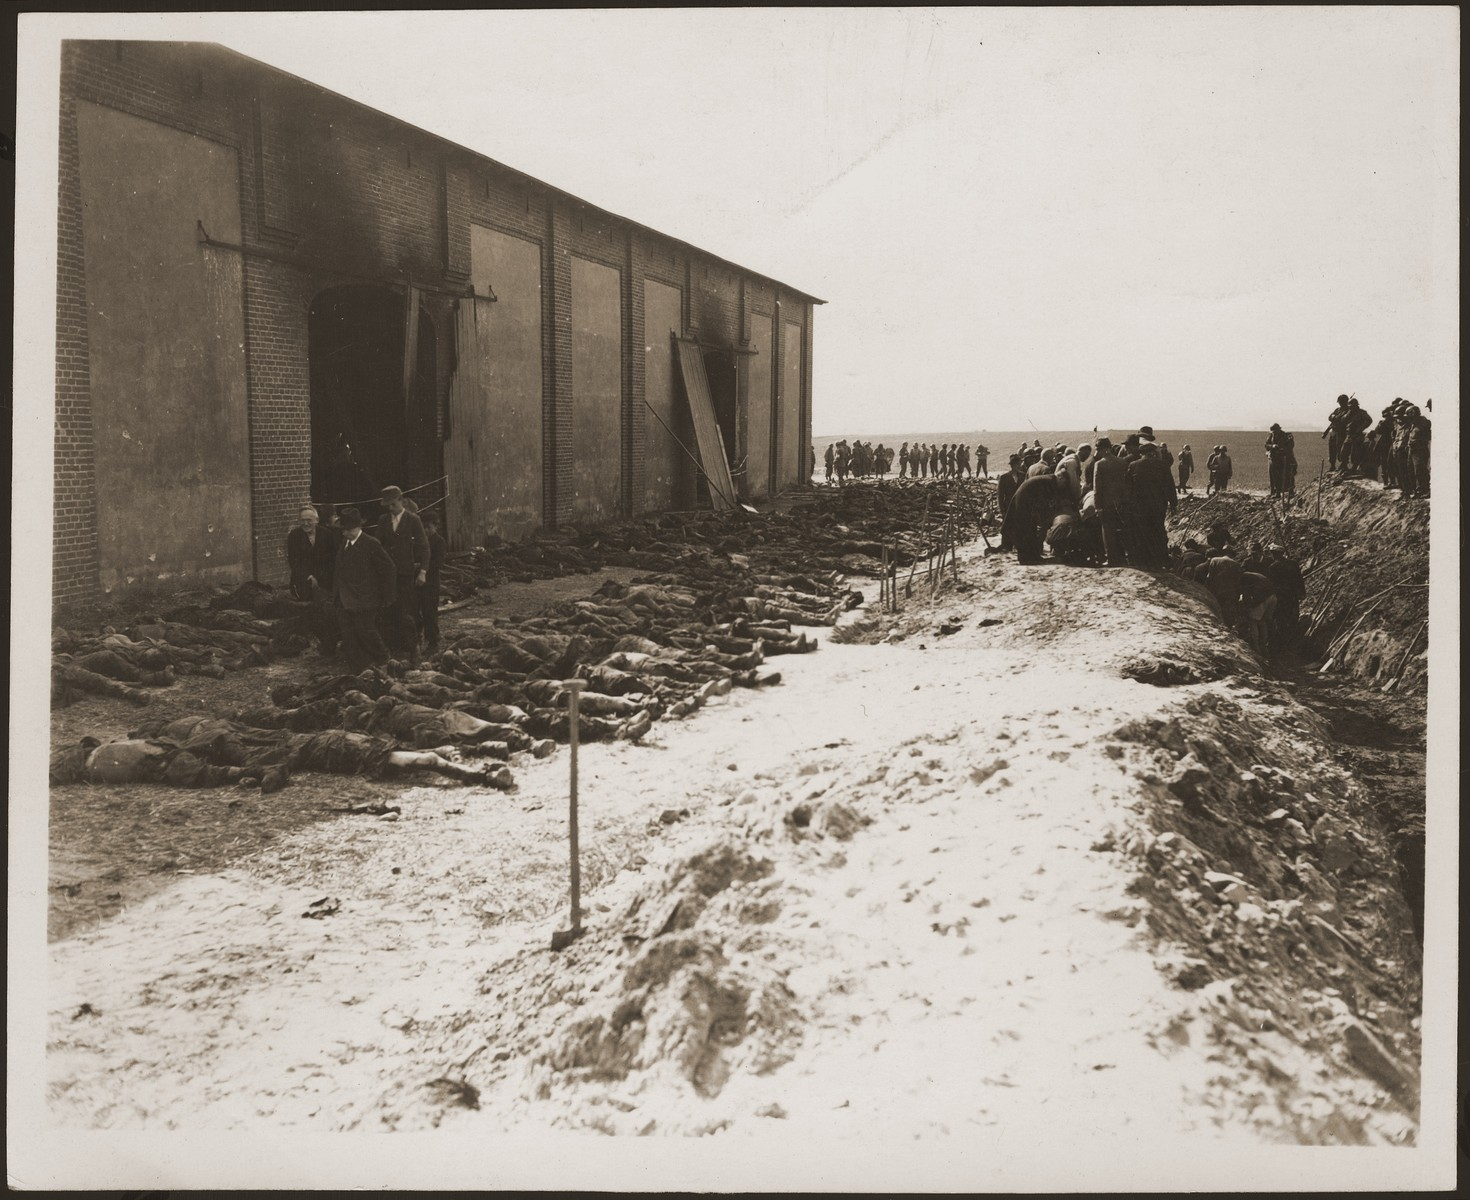 Under the supervision of American soldiers, German civilians exhume the corpses of prisoners killed in a barn and buried in a mass grave by the SS.